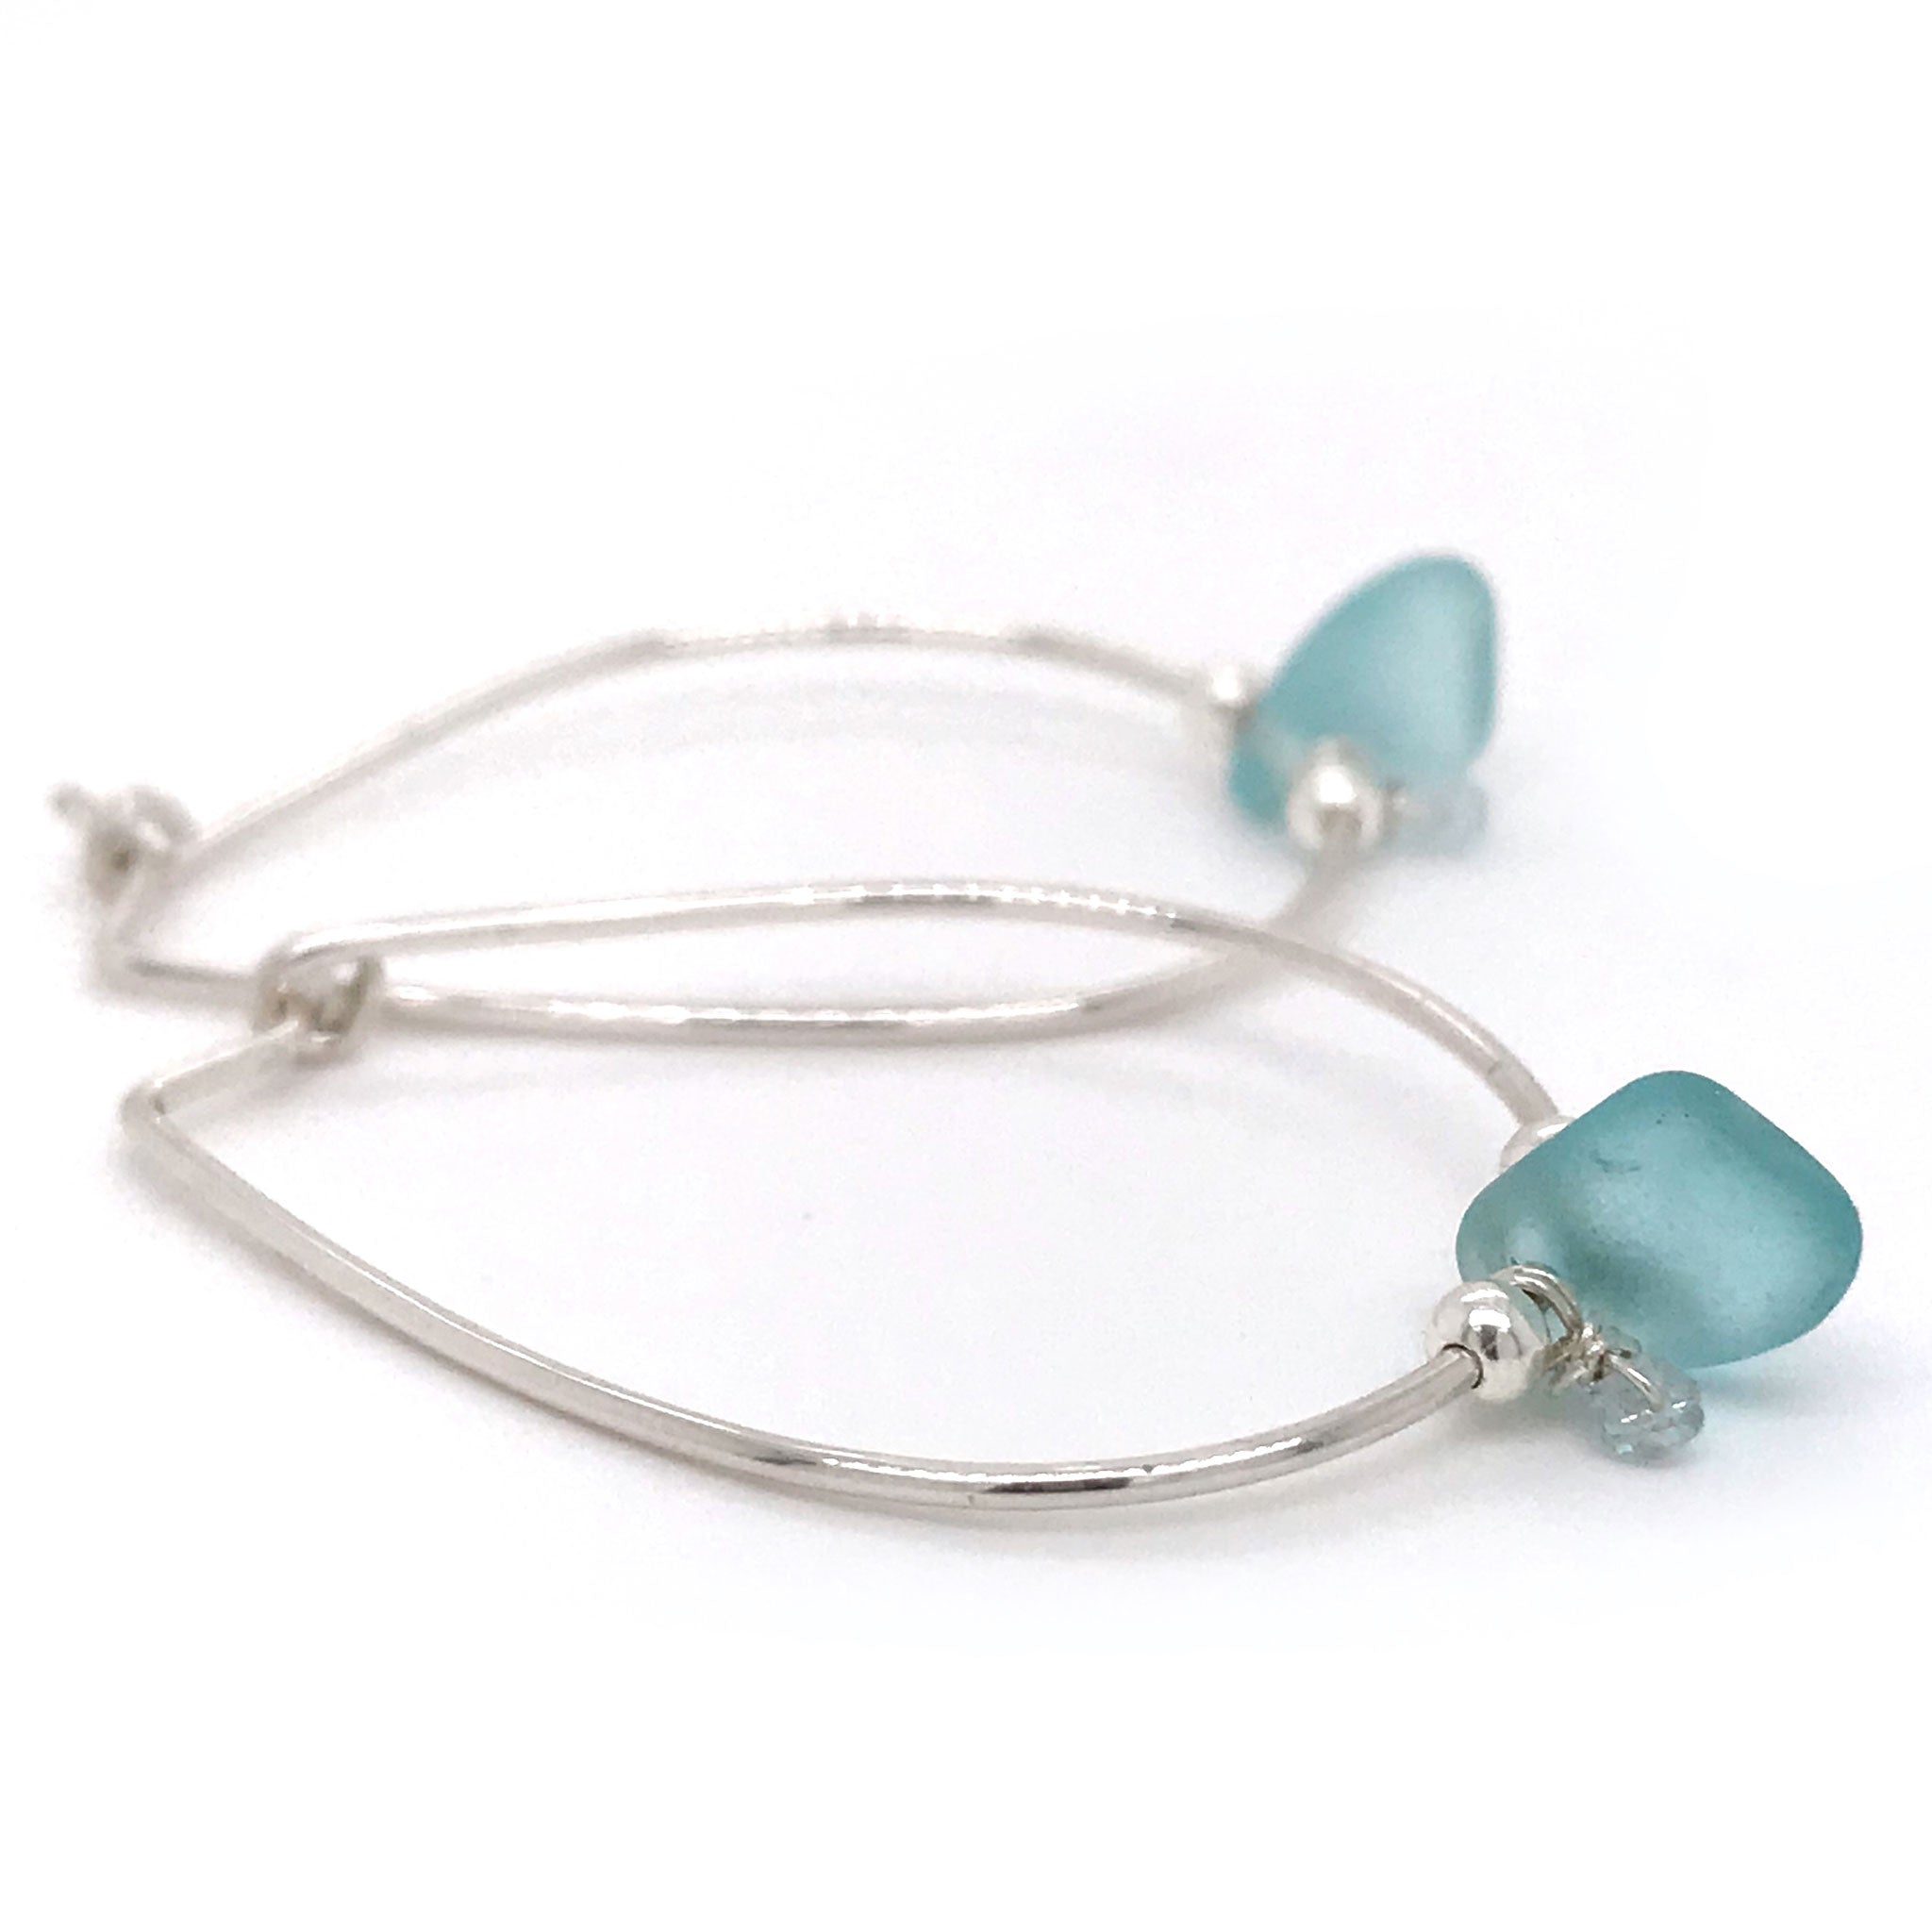 aqua seaglass earrings sterling silver hoops  Kriket Broadhurst jewellery